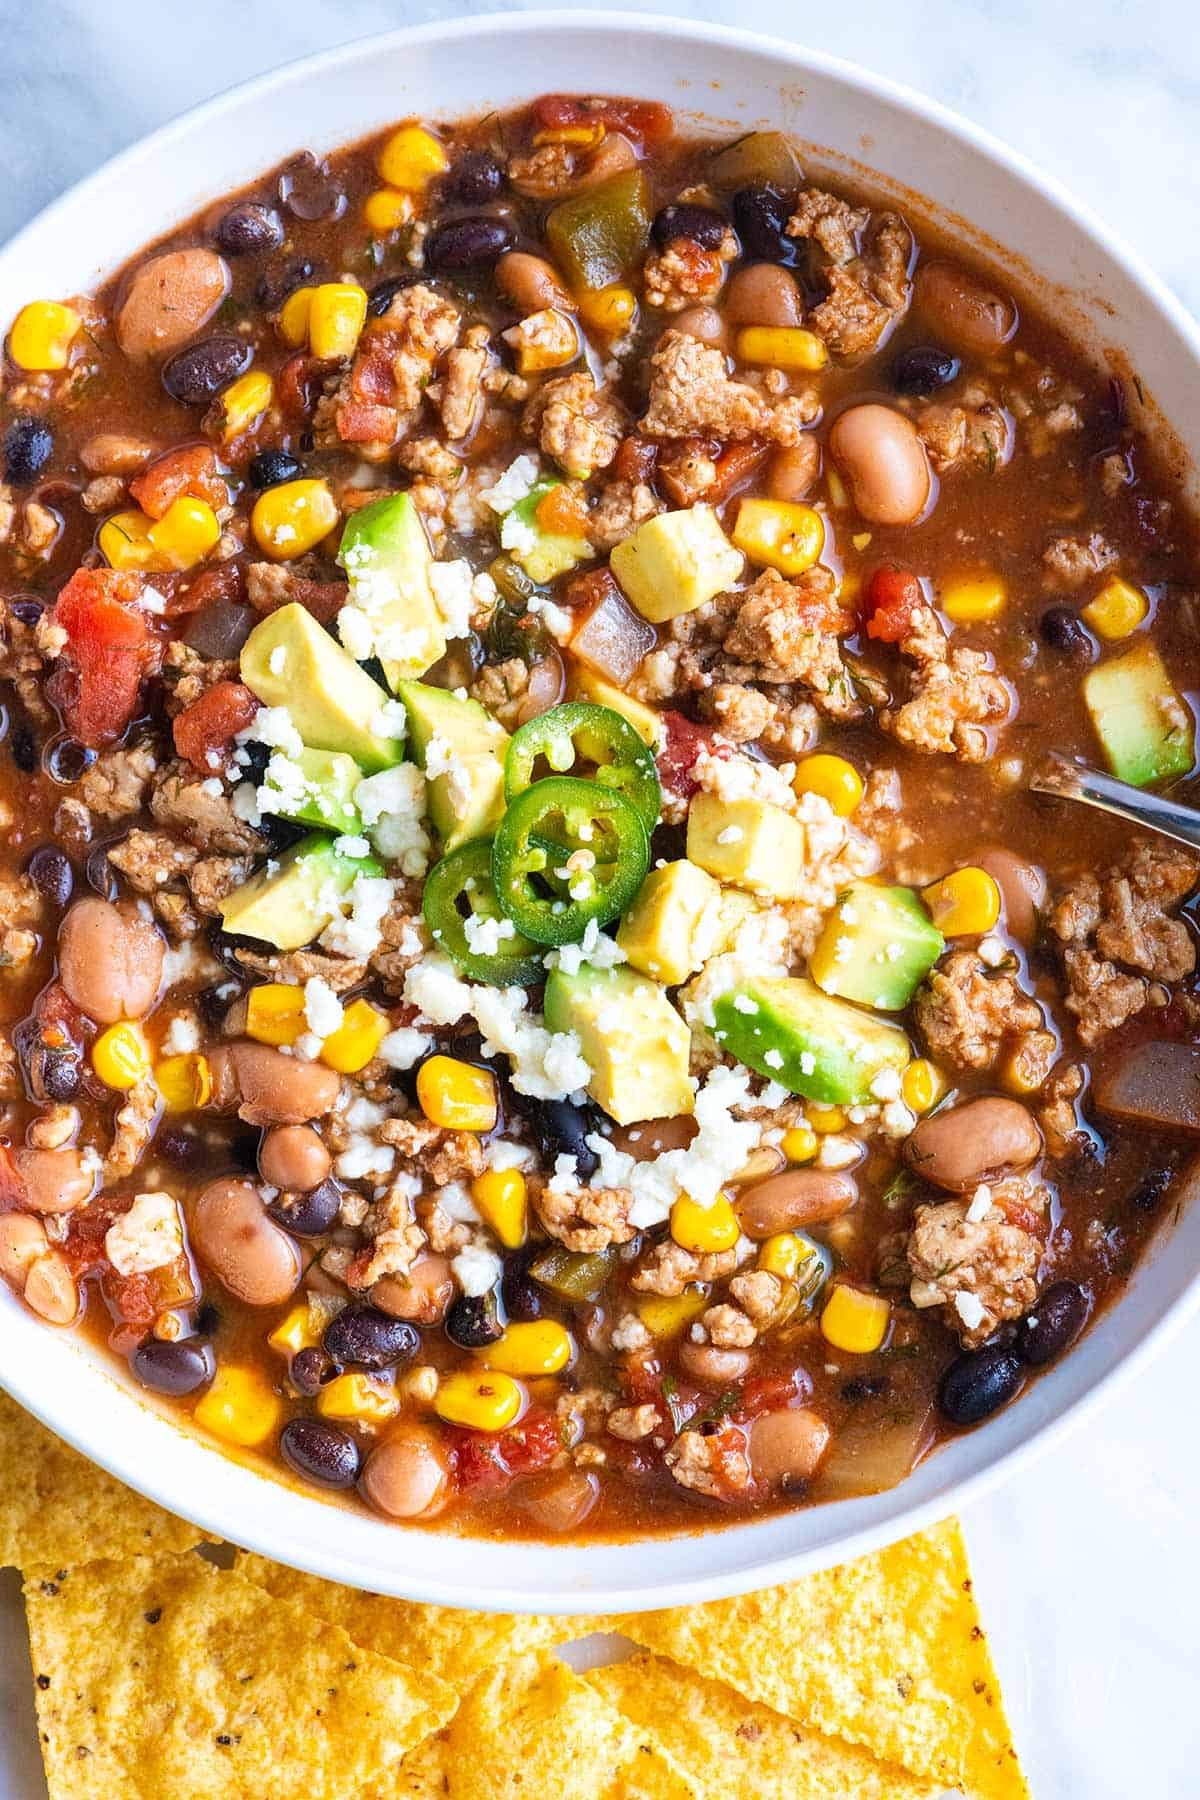 Quick and Easy Taco Soup Recipe with Stovetop, Instant Pot, and Slow Cooker Instructions